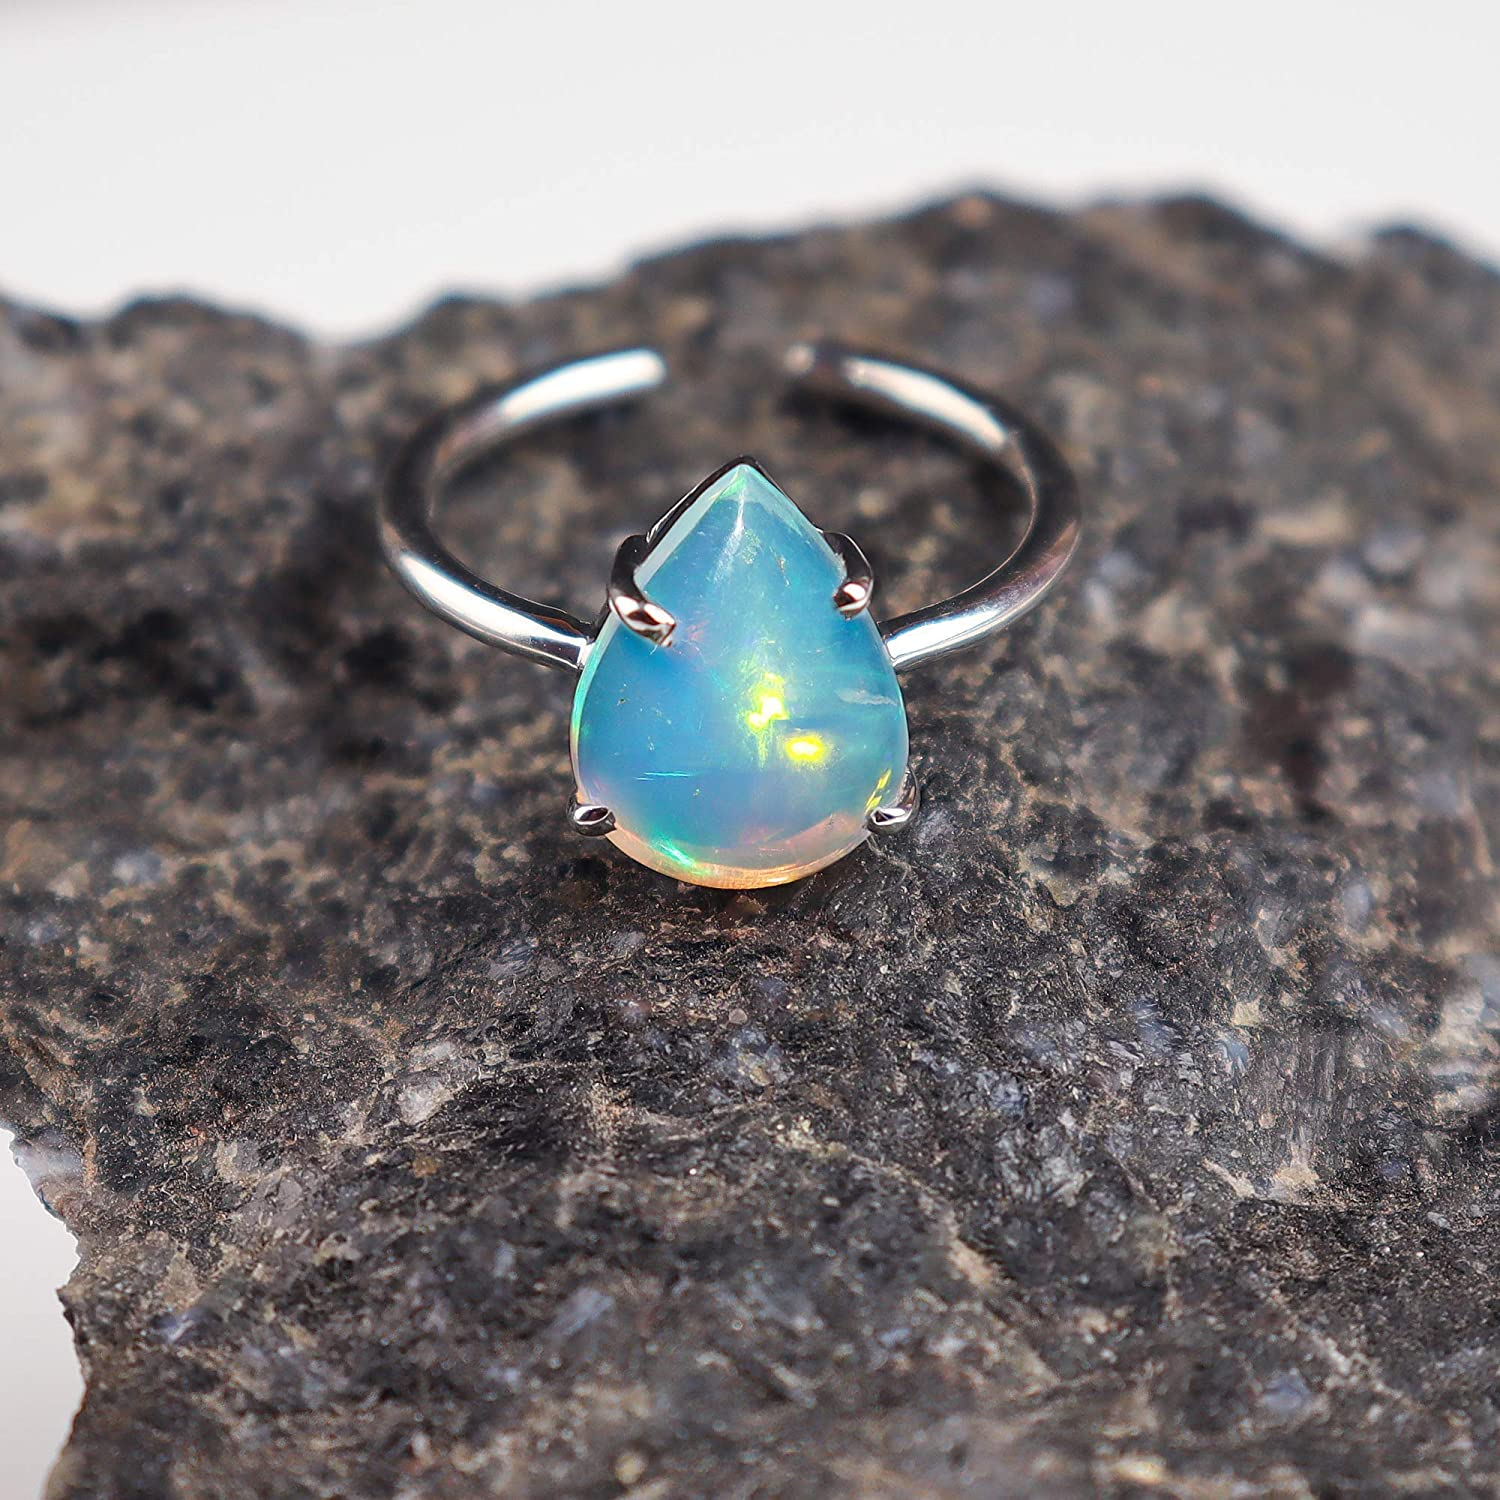 Natural Ethiopian Opal Cabochon Gemstone 1.80 Cts Attractive Multi Flashy Fire Ring Size Opal Gemstone For Making Spectacular Ring 10x7x4 MM